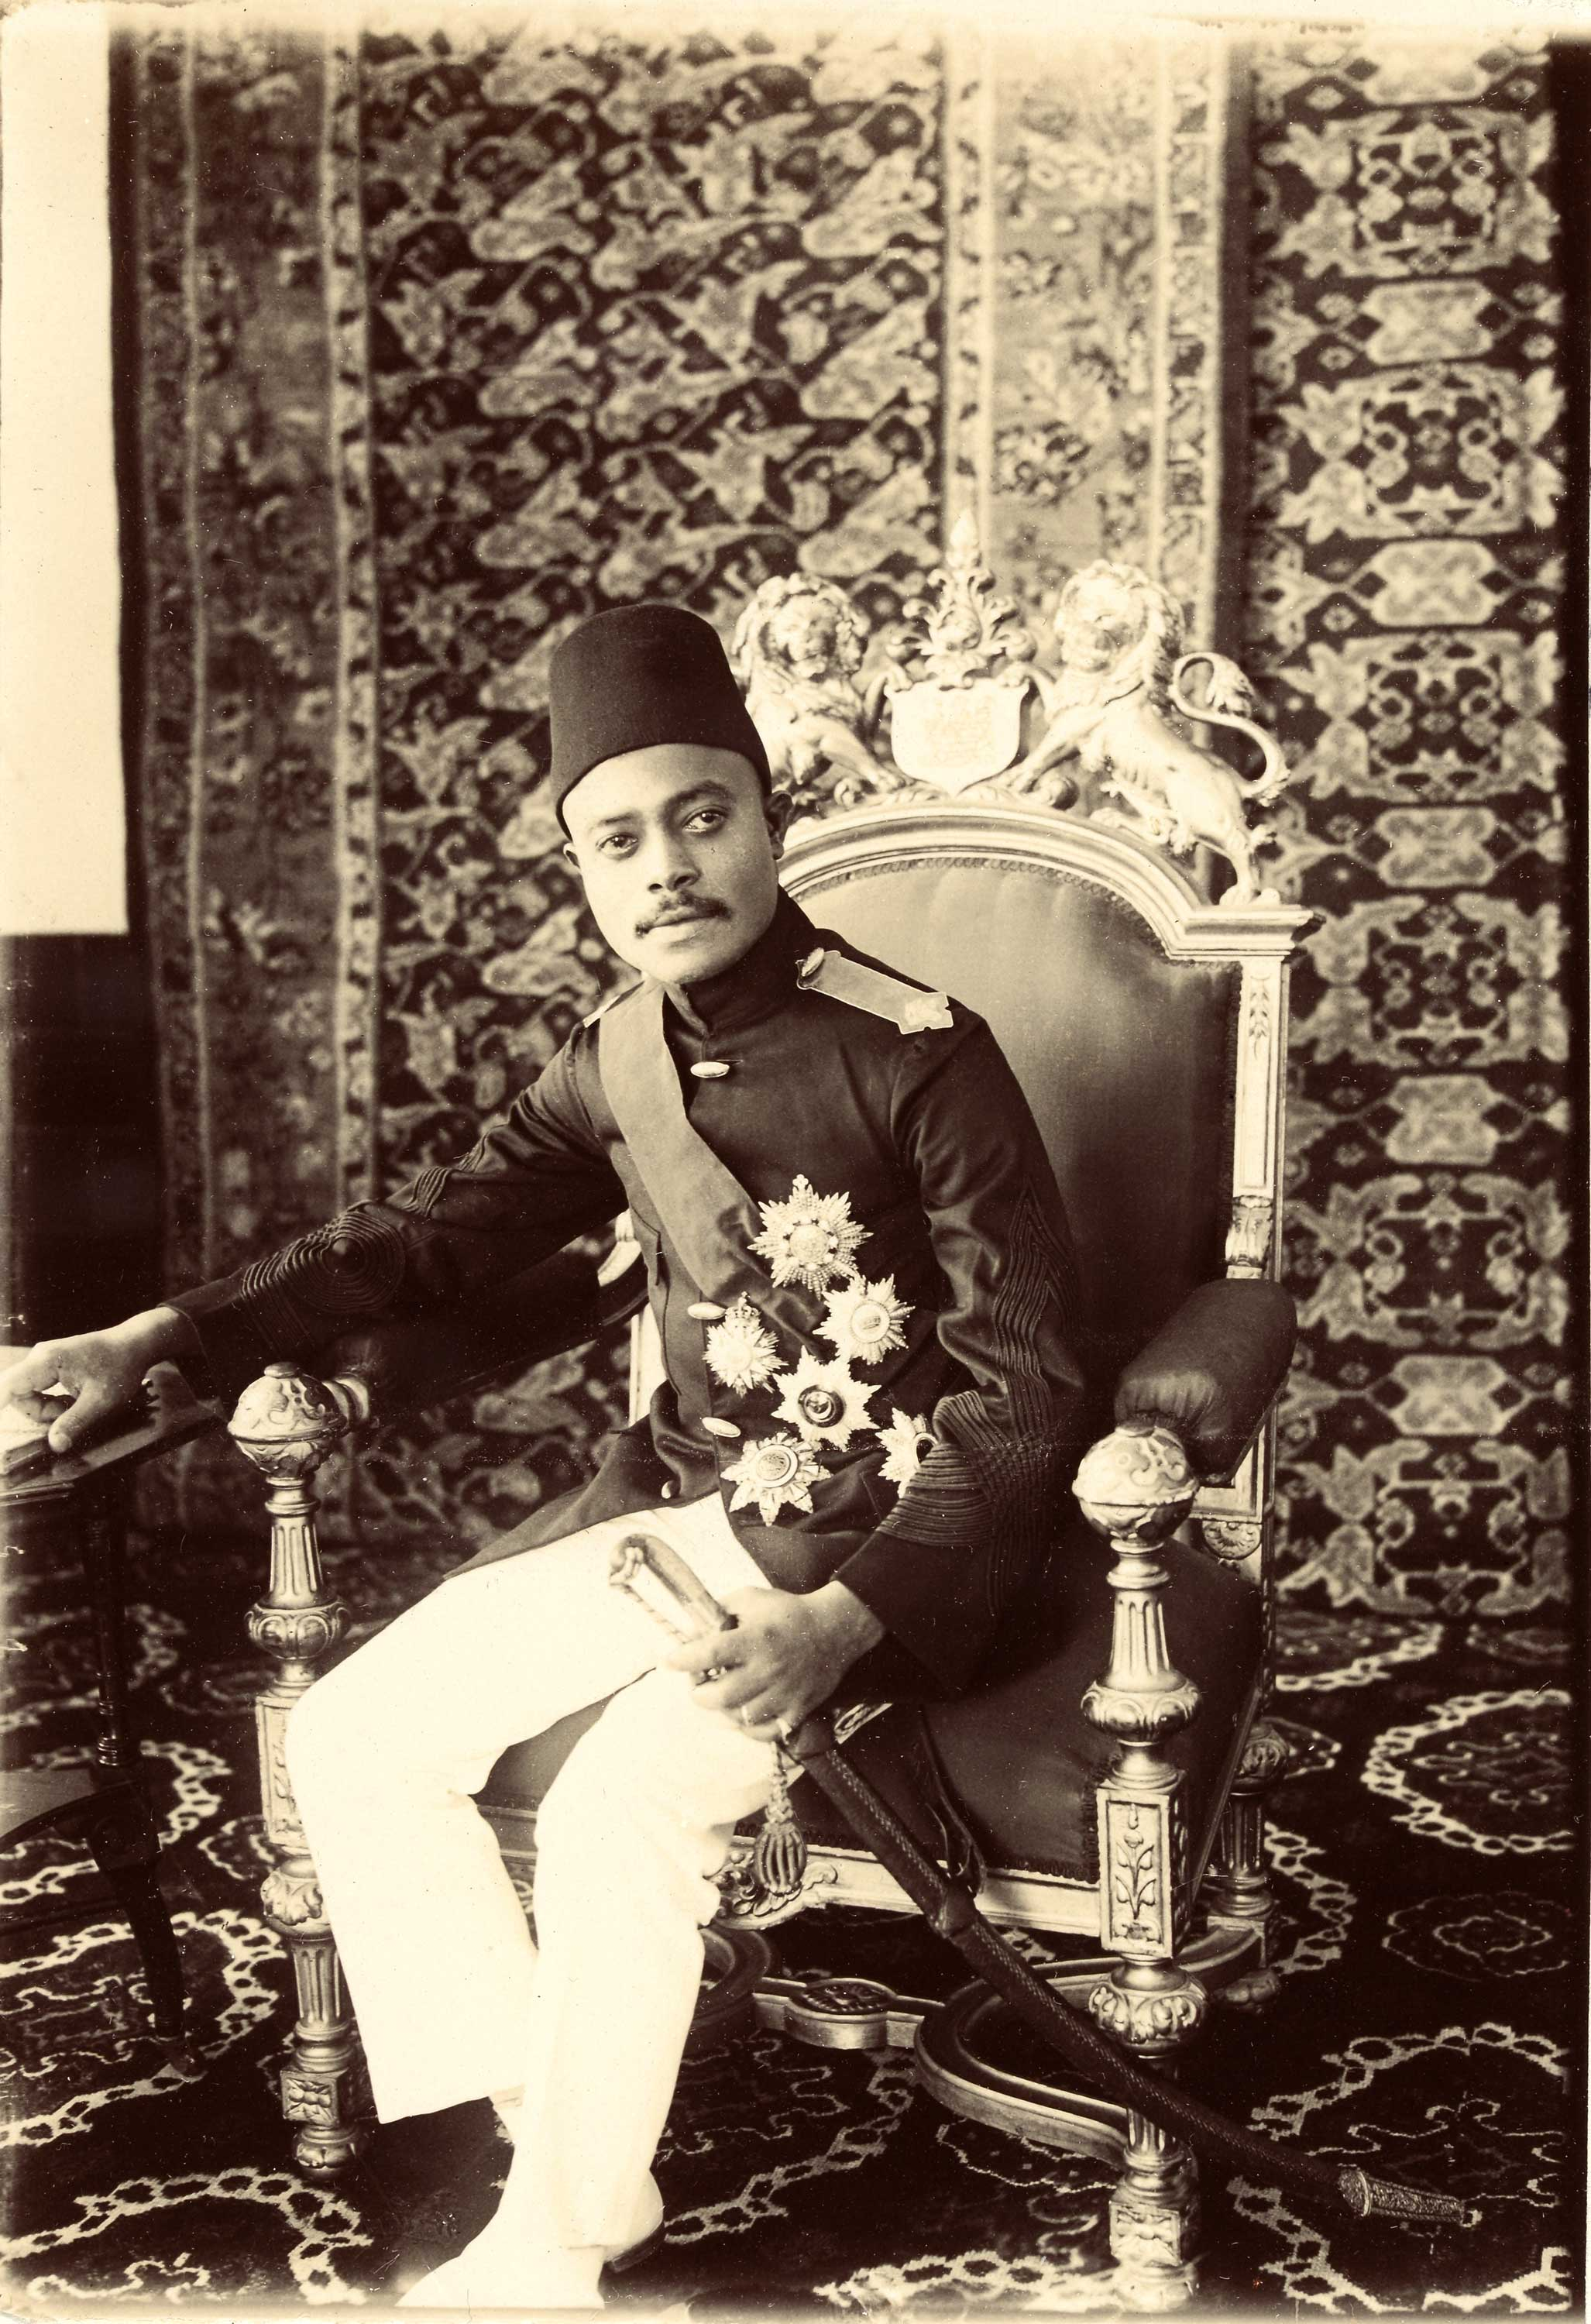 COPY1/522 (274) Ali Bin Hamoud, Sultan of Zanzibar 1908